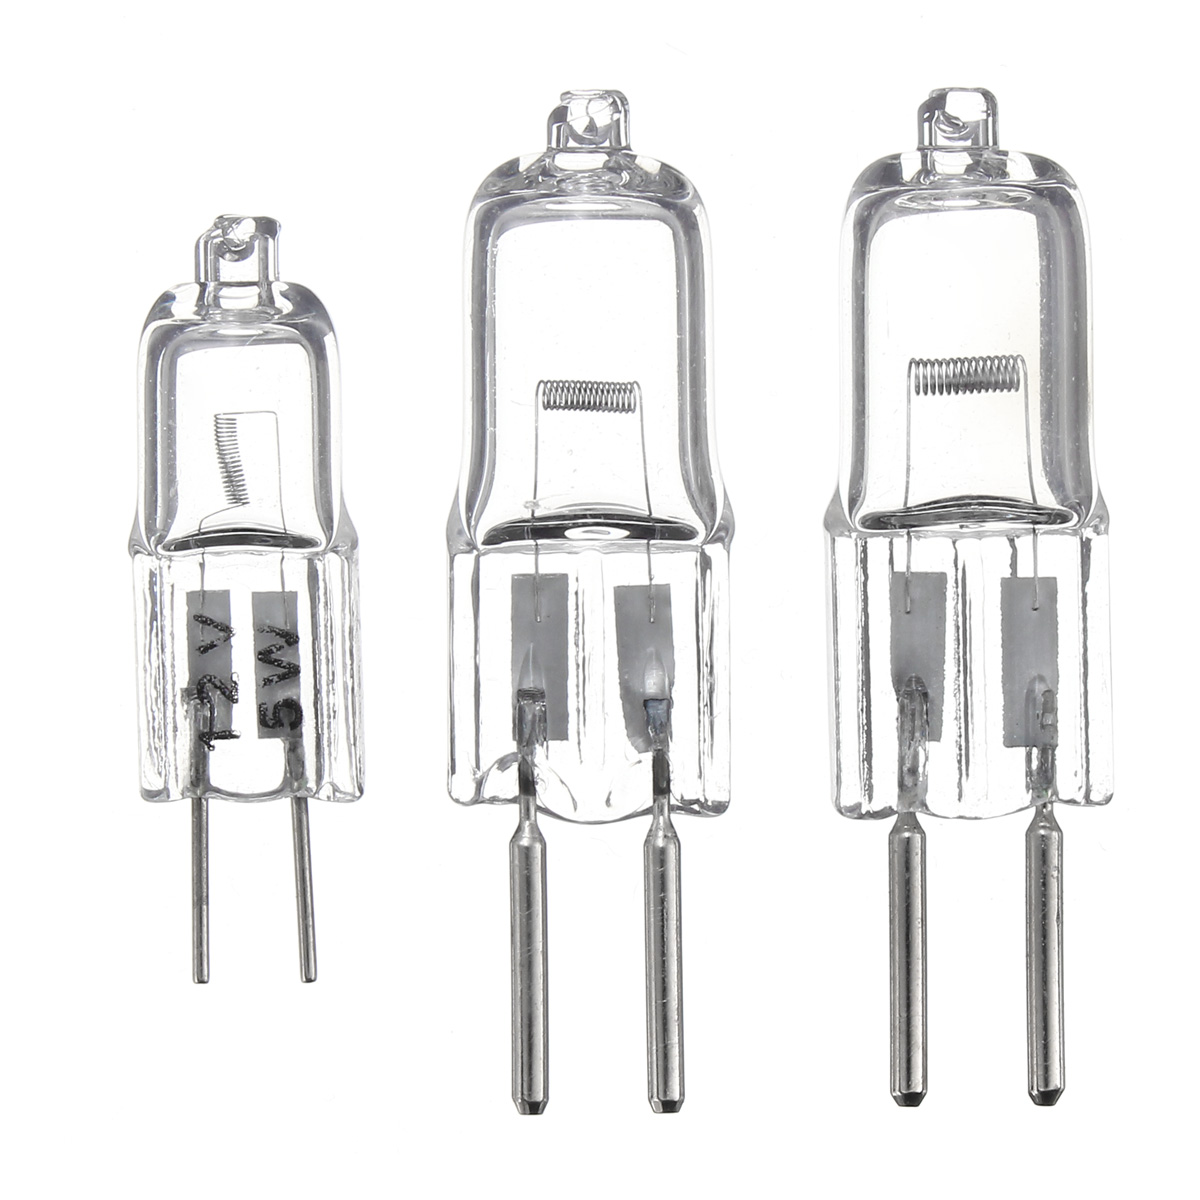 G4 5W 35W 50W Bi-Pin Light Bulb Replacement Halogen Lamp Warm White 12V